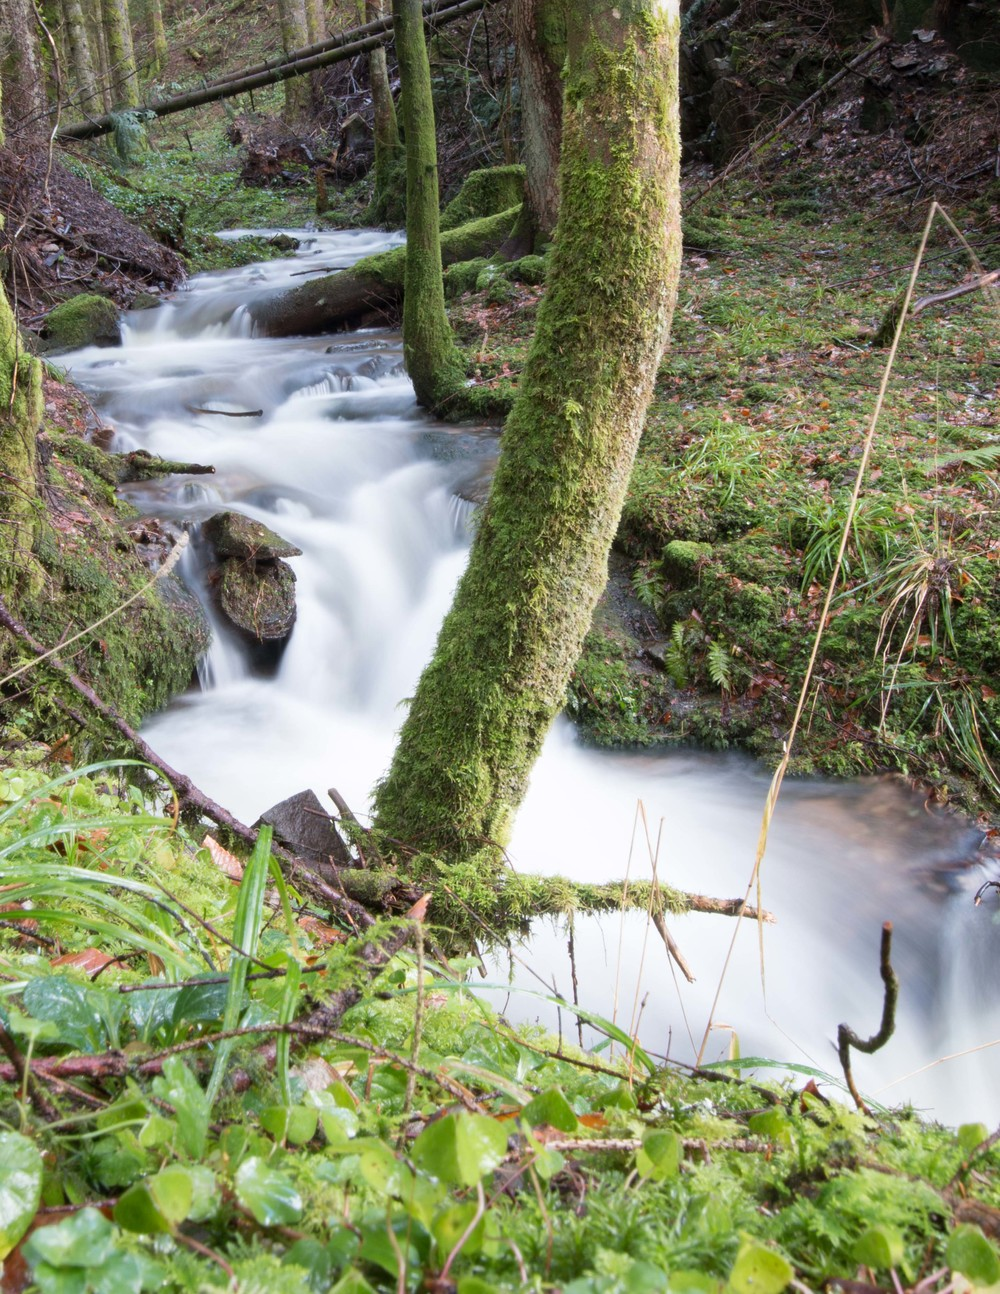 One of the thousands of streams that run through the trees and hills of the Black Forest